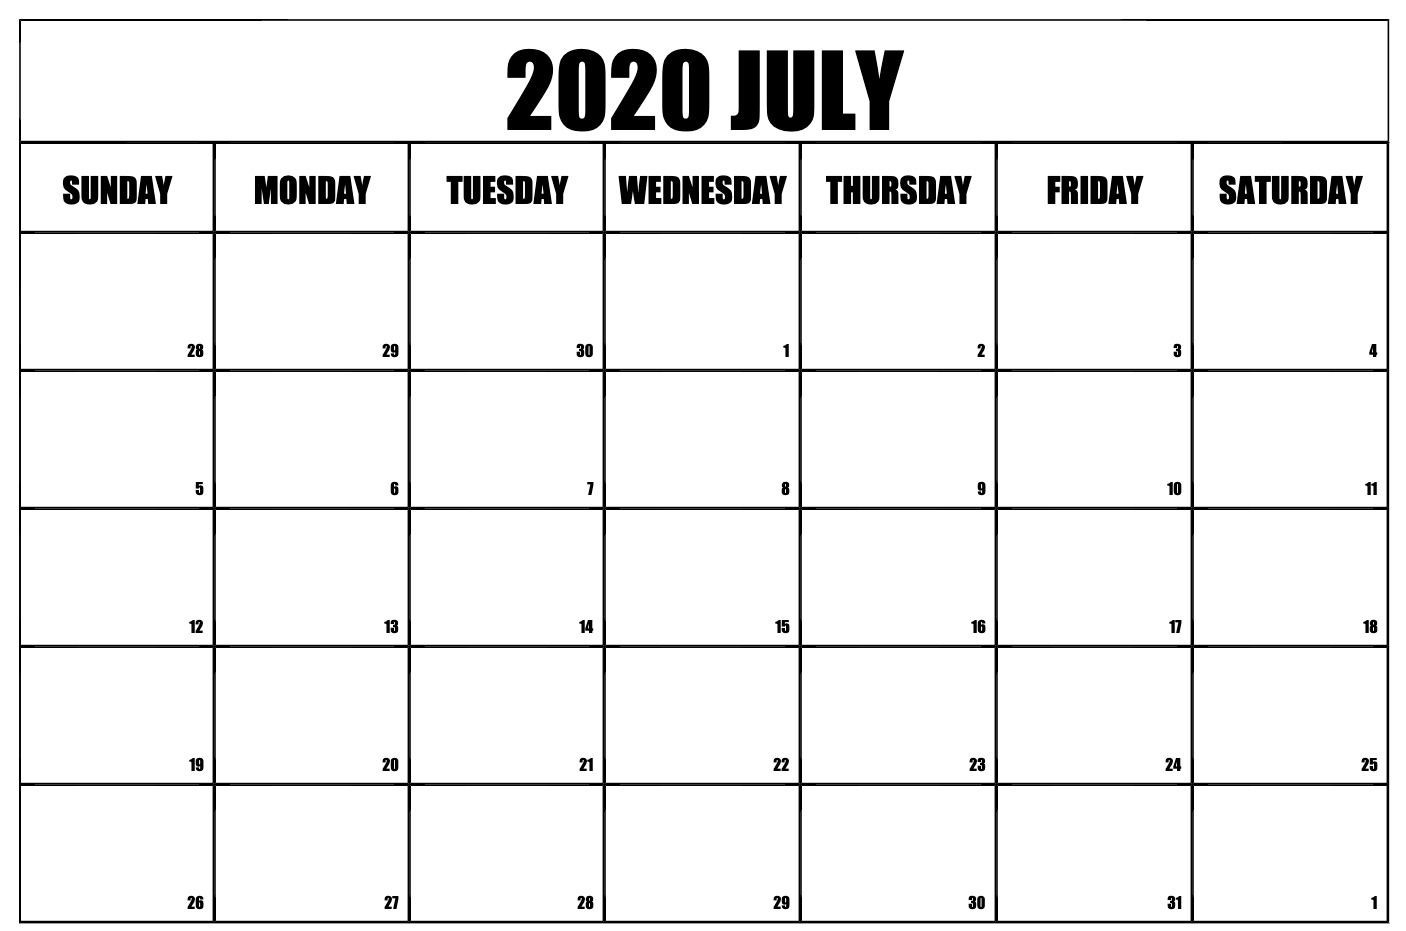 Free July Calendar 2020 Monthly Printable Templates | July-2020 Calendar Templates Monday - Friday